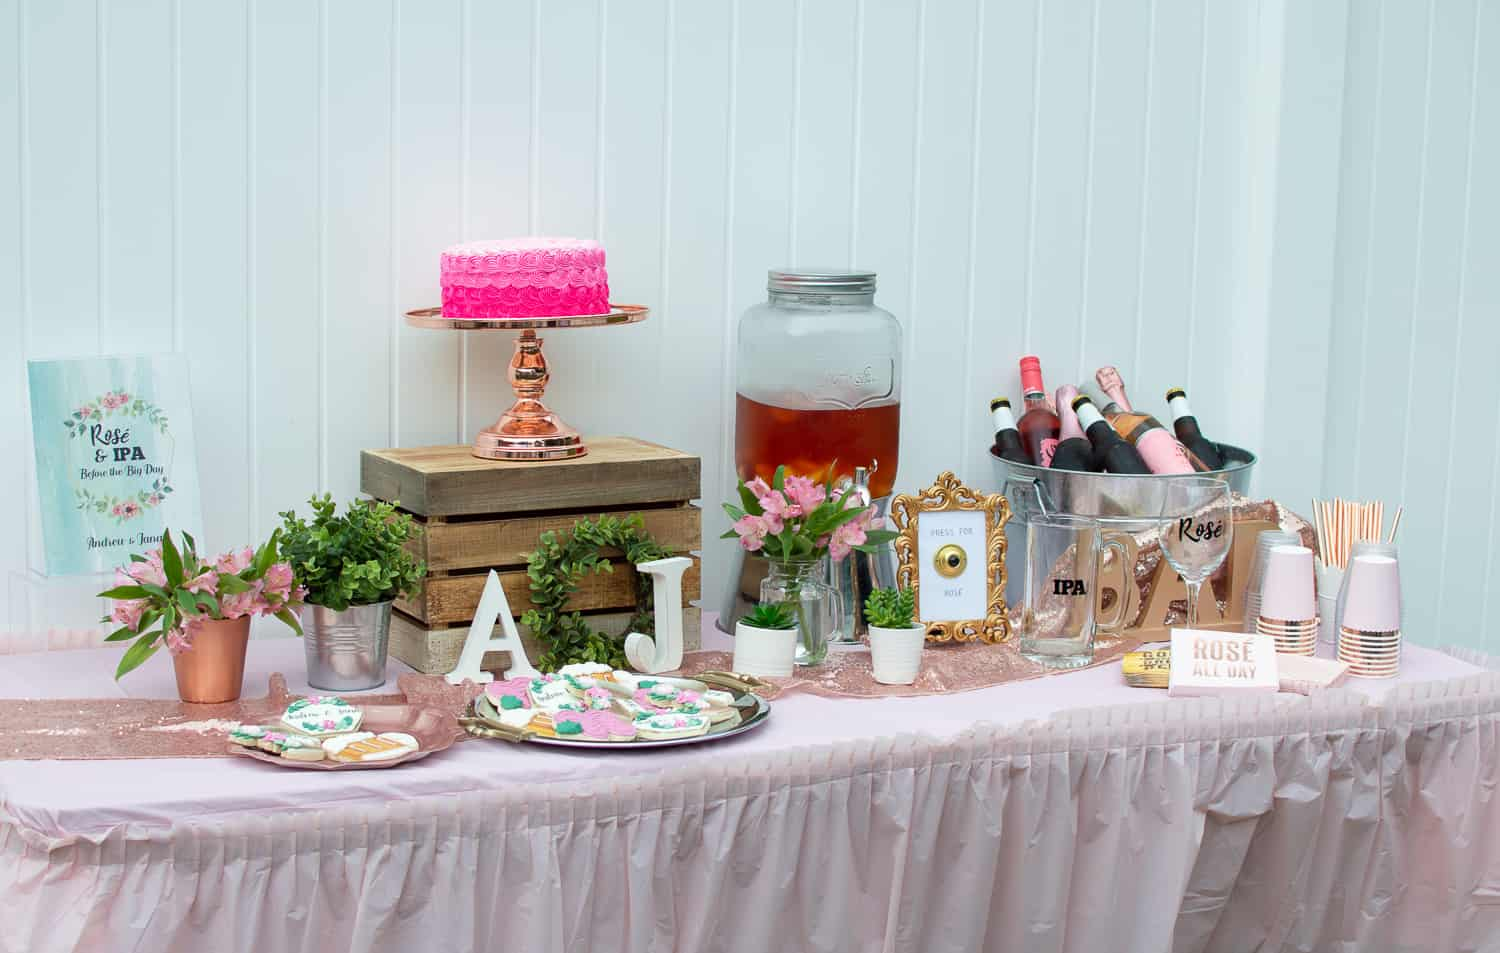 Rosé and IPA dessert and drinks table at a couples wedding shower